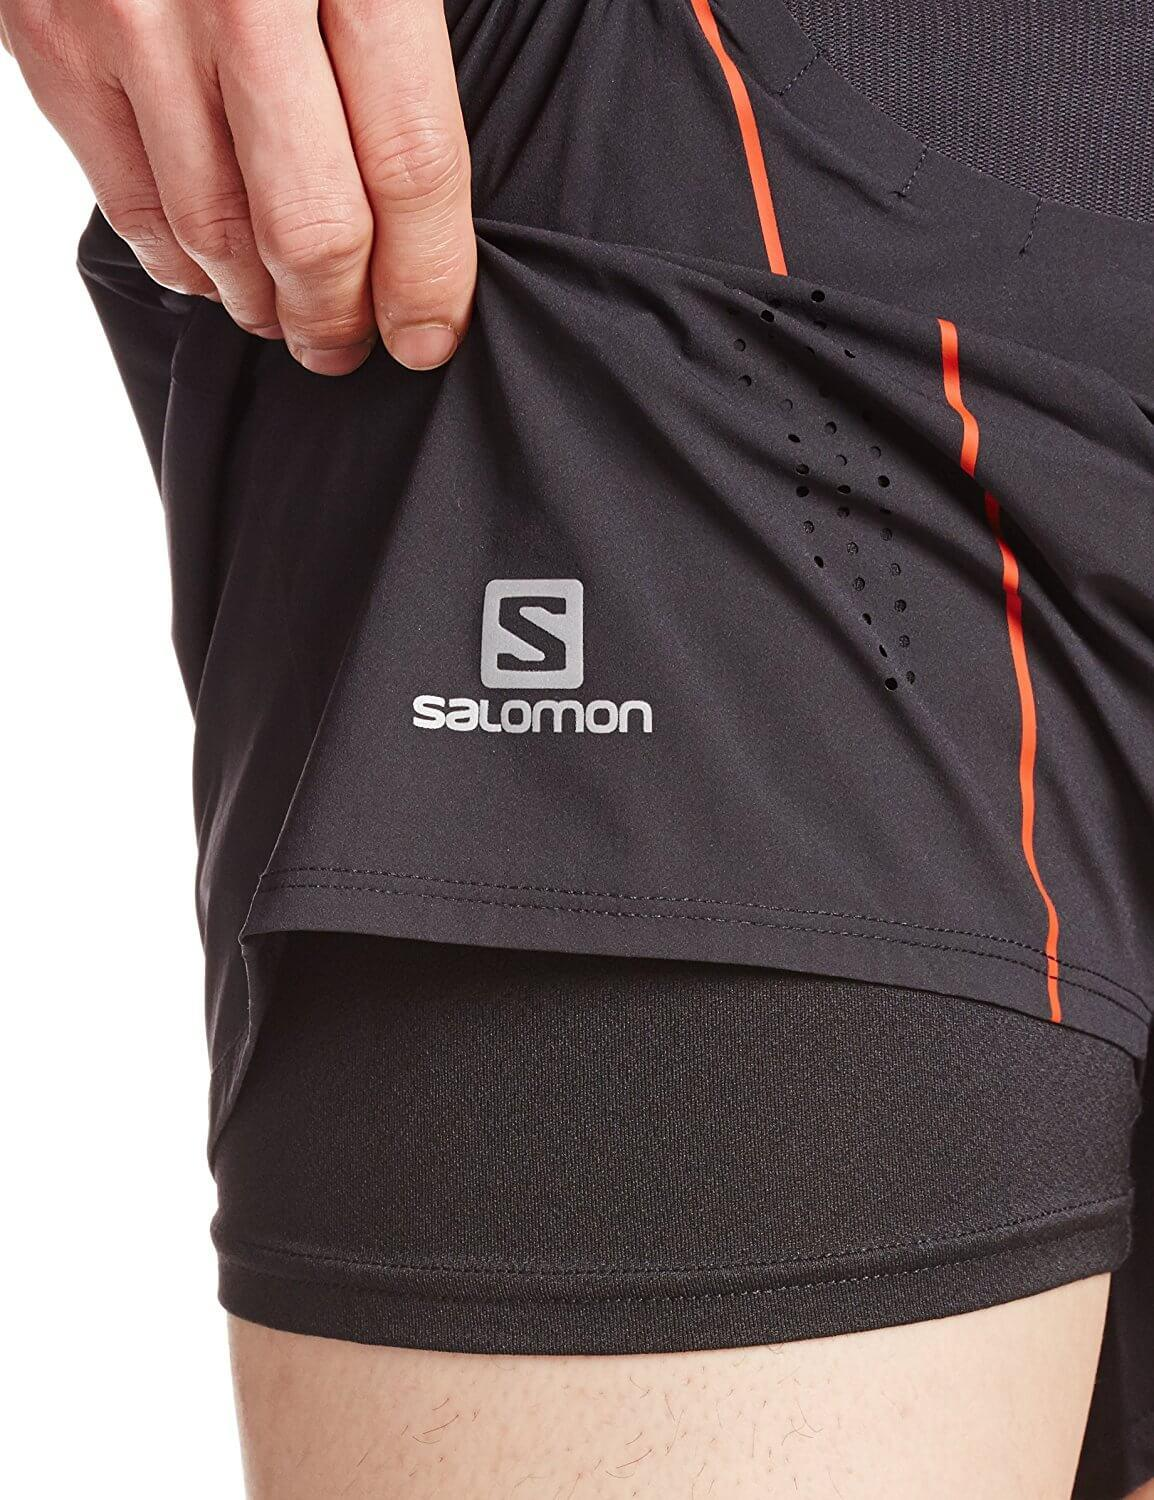 Salomon Running Shorts 2019Runnerclick Best In Rated 7Yyfg6b